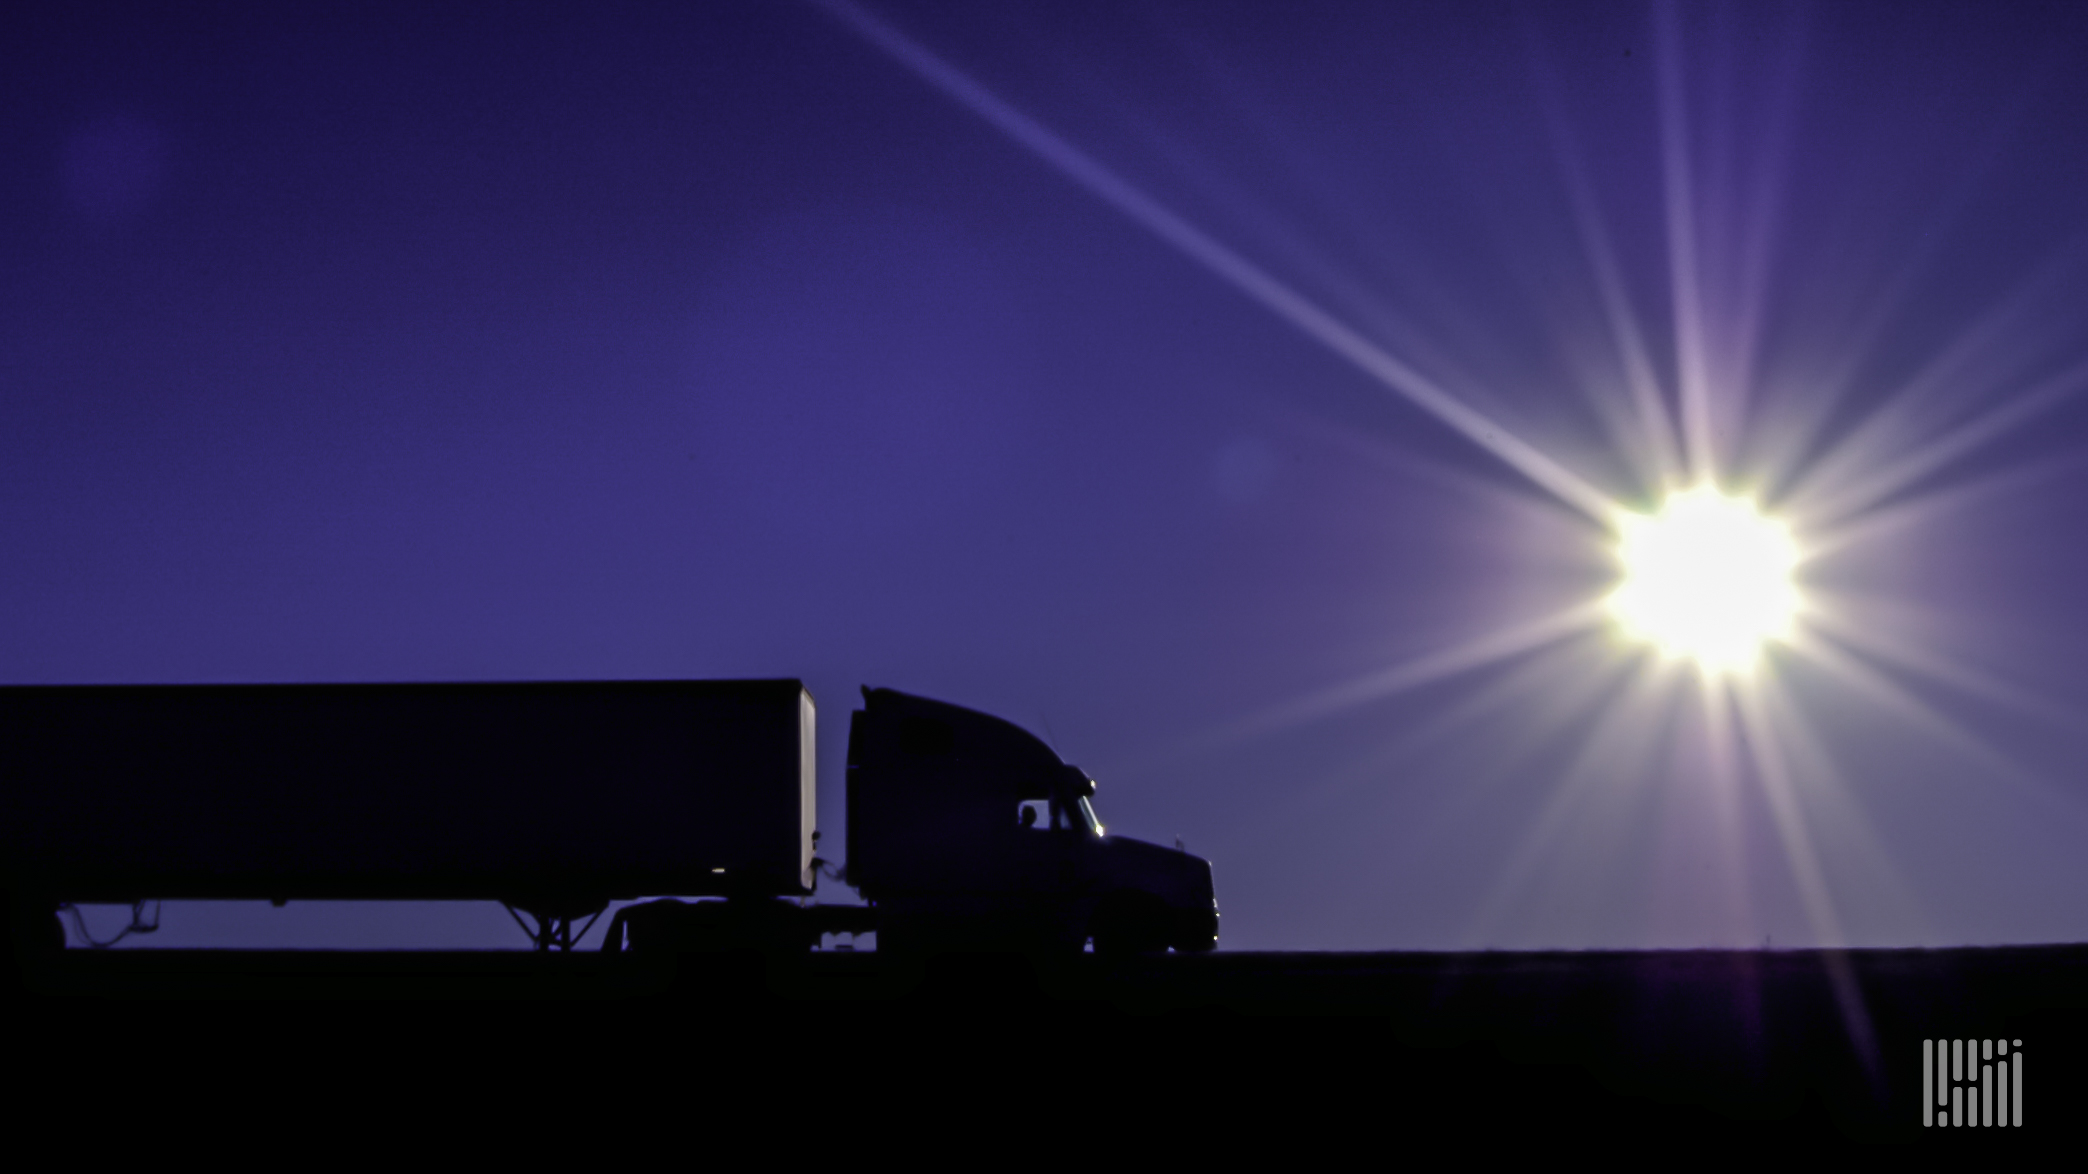 Tractor-trailer heading down a desert highway with scorching sun in the sky.